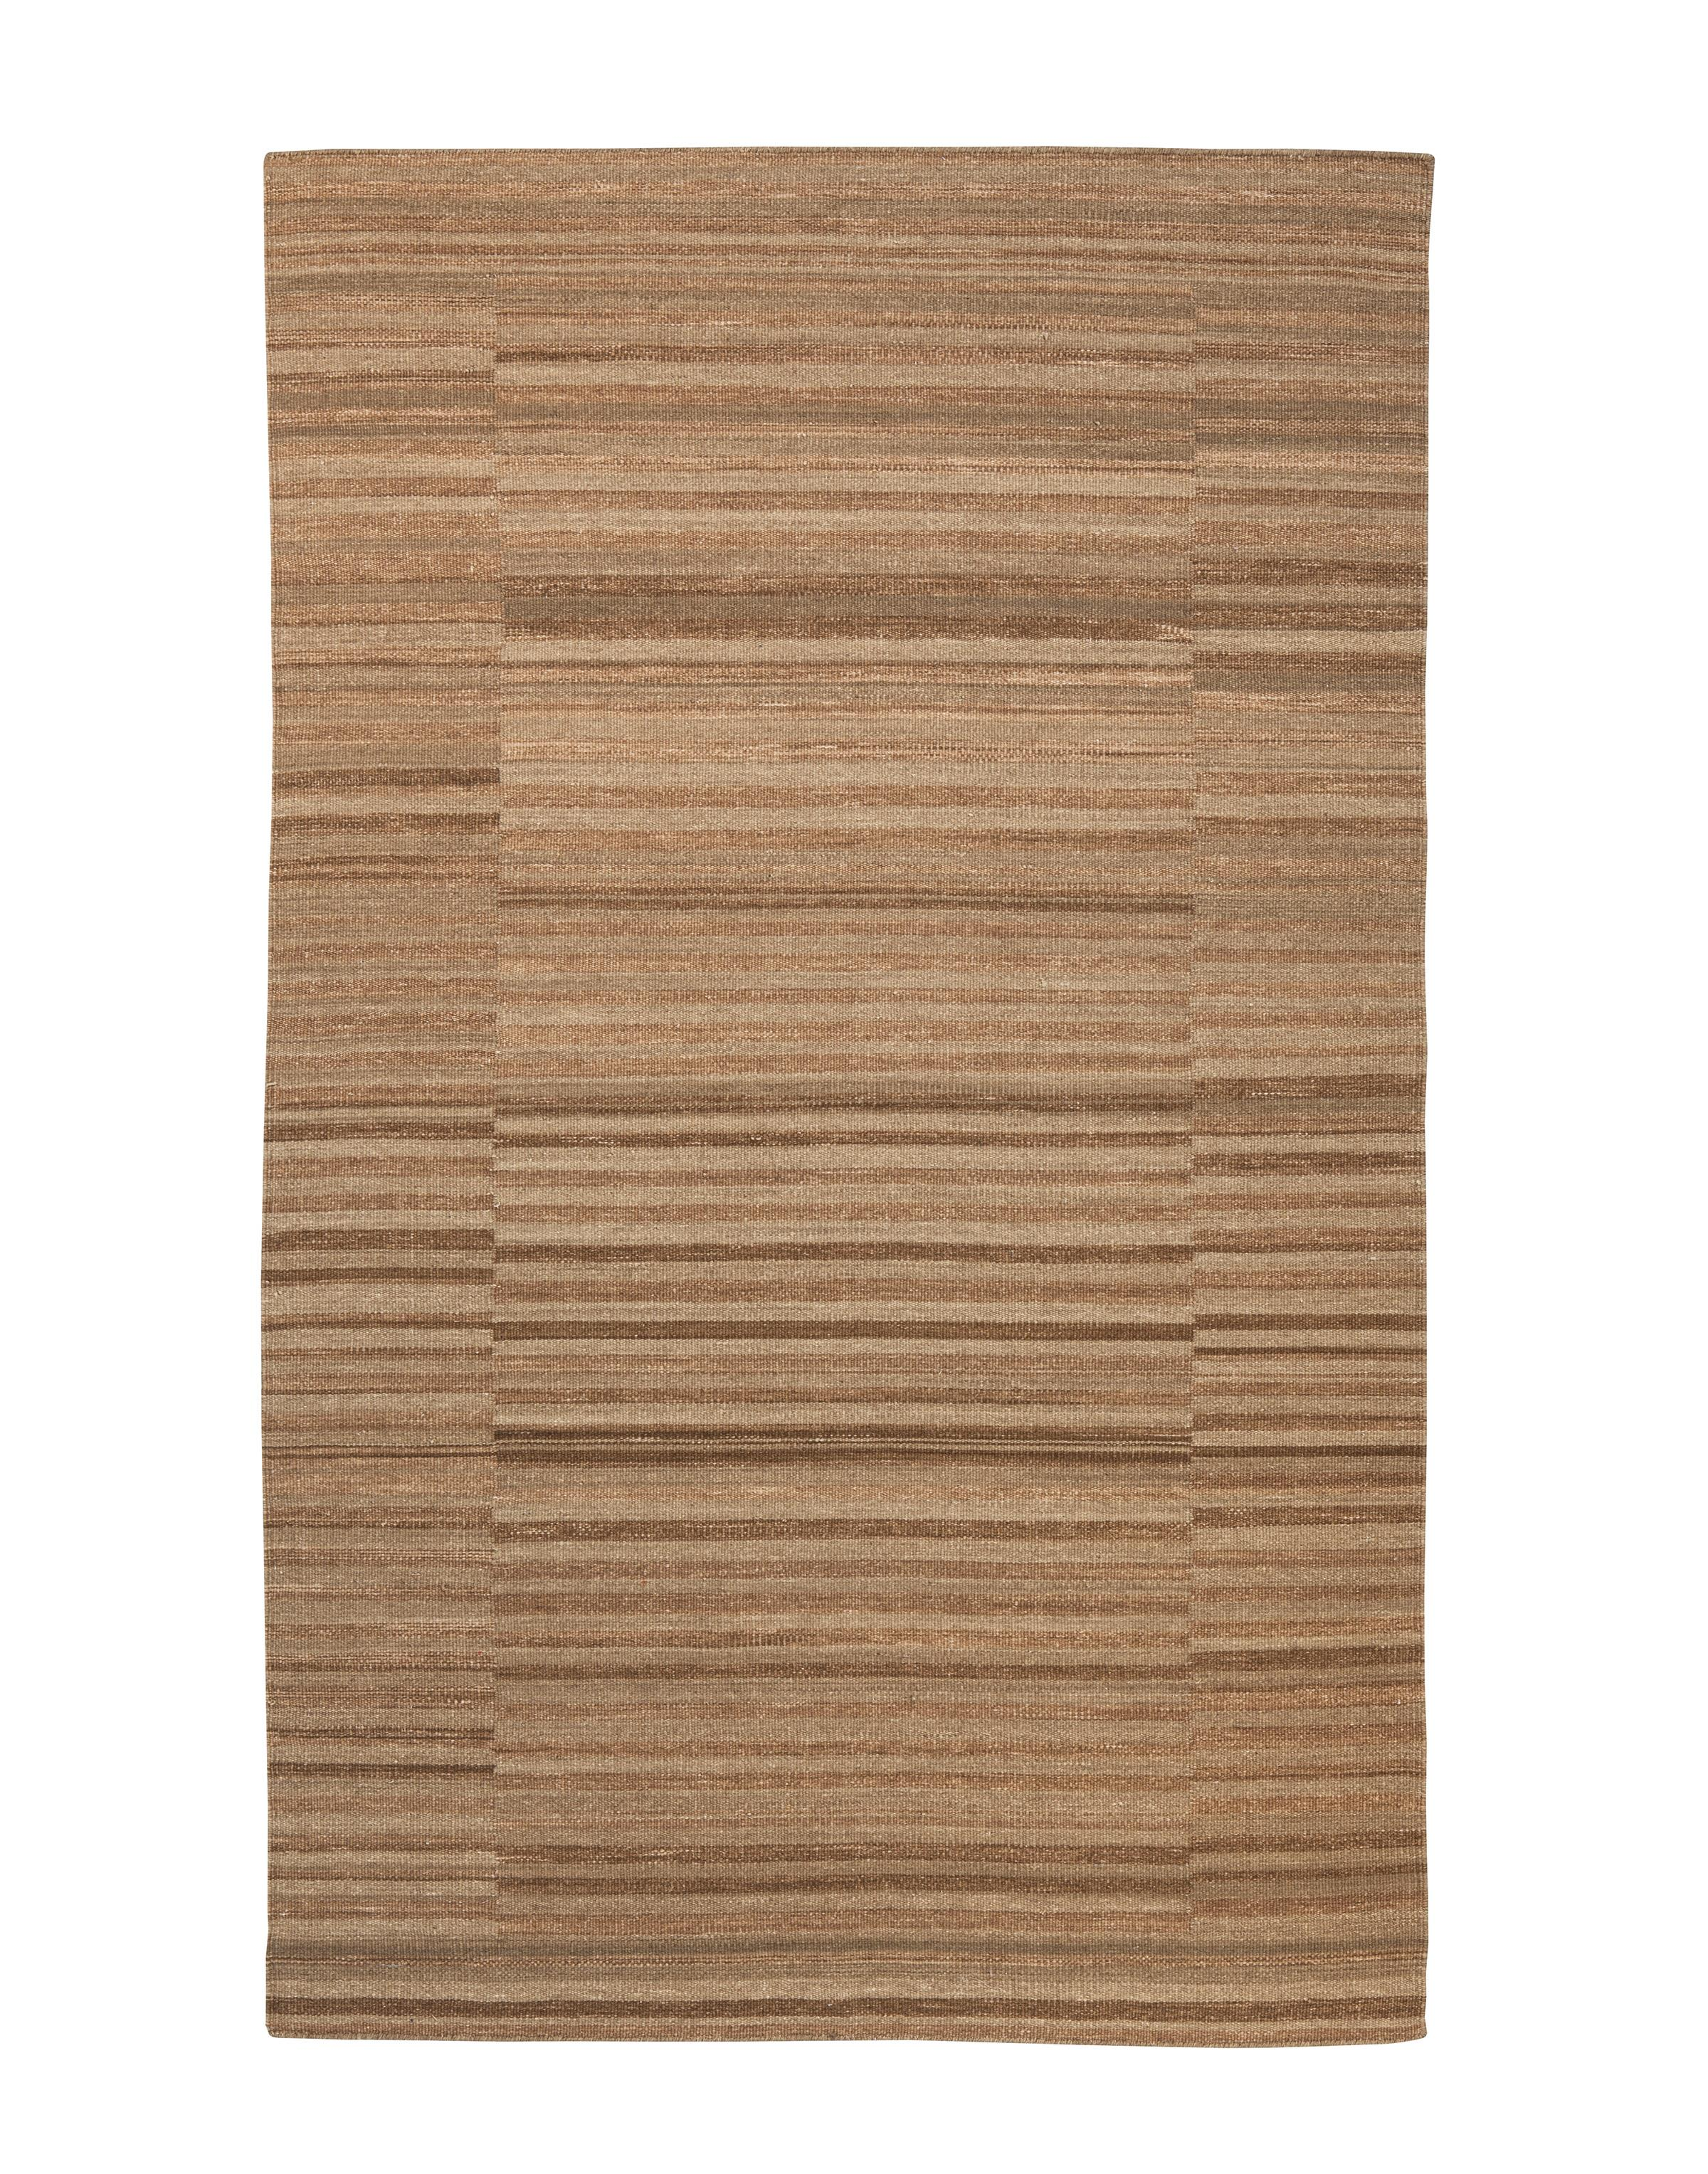 Signature Design by Ashley Transitional Area Rugs Flatweave - Taupe Medium Rug - Item Number: R401742